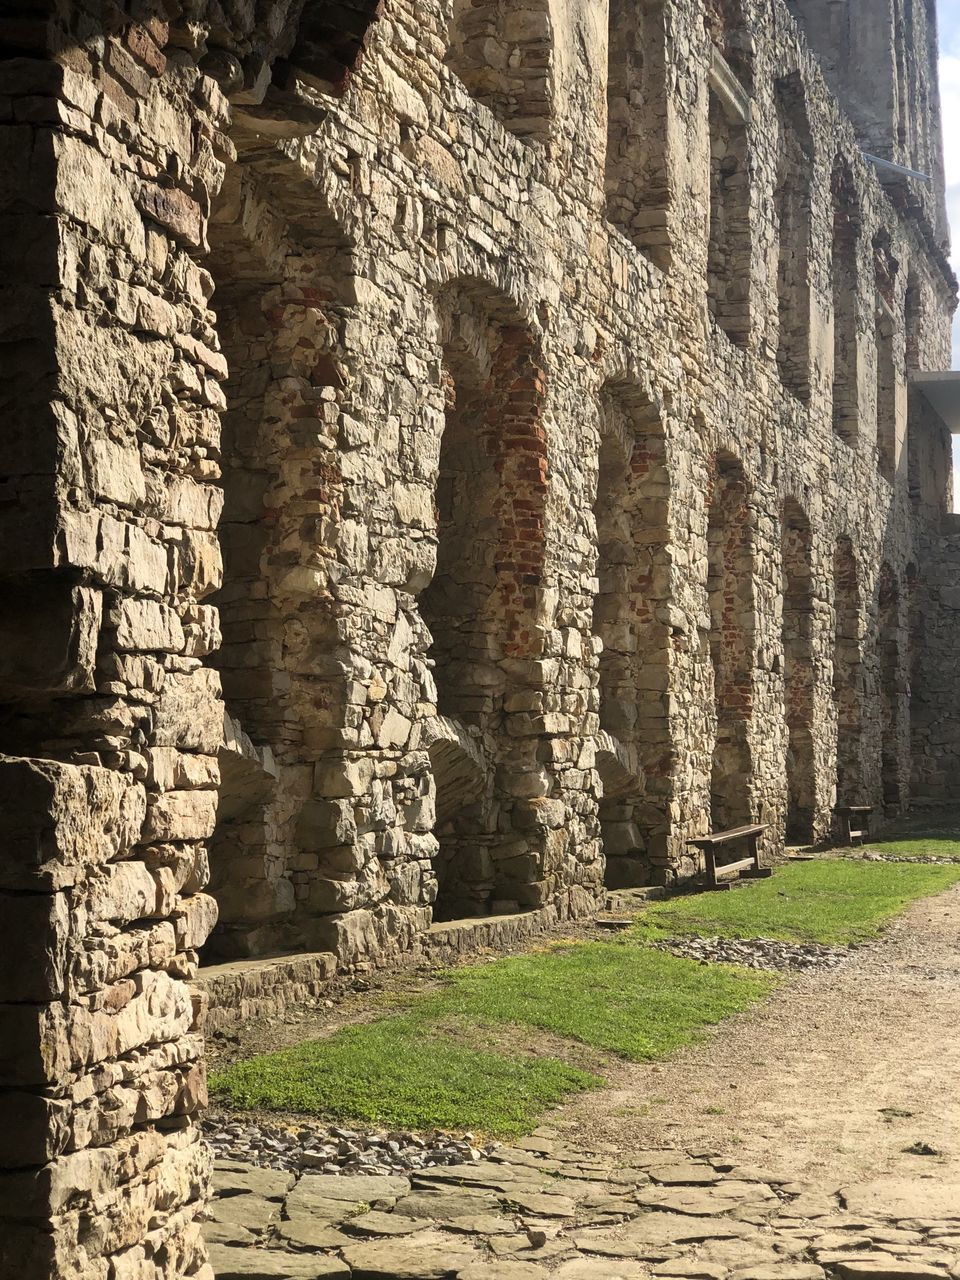 history, the past, architecture, ancient, built structure, old ruin, travel destinations, architectural column, ancient civilization, day, old, tourism, travel, arch, building, building exterior, no people, archaeology, nature, wall, ruined, outdoors, stone wall, colonnade